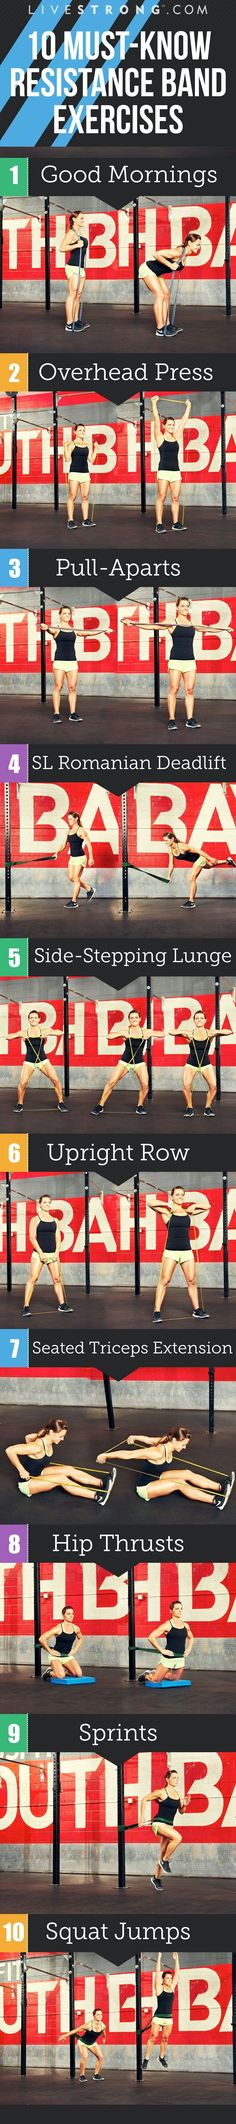 cool 10 Resistance Band Exercises to Tone and Tighten | LIVESTRONG.COM